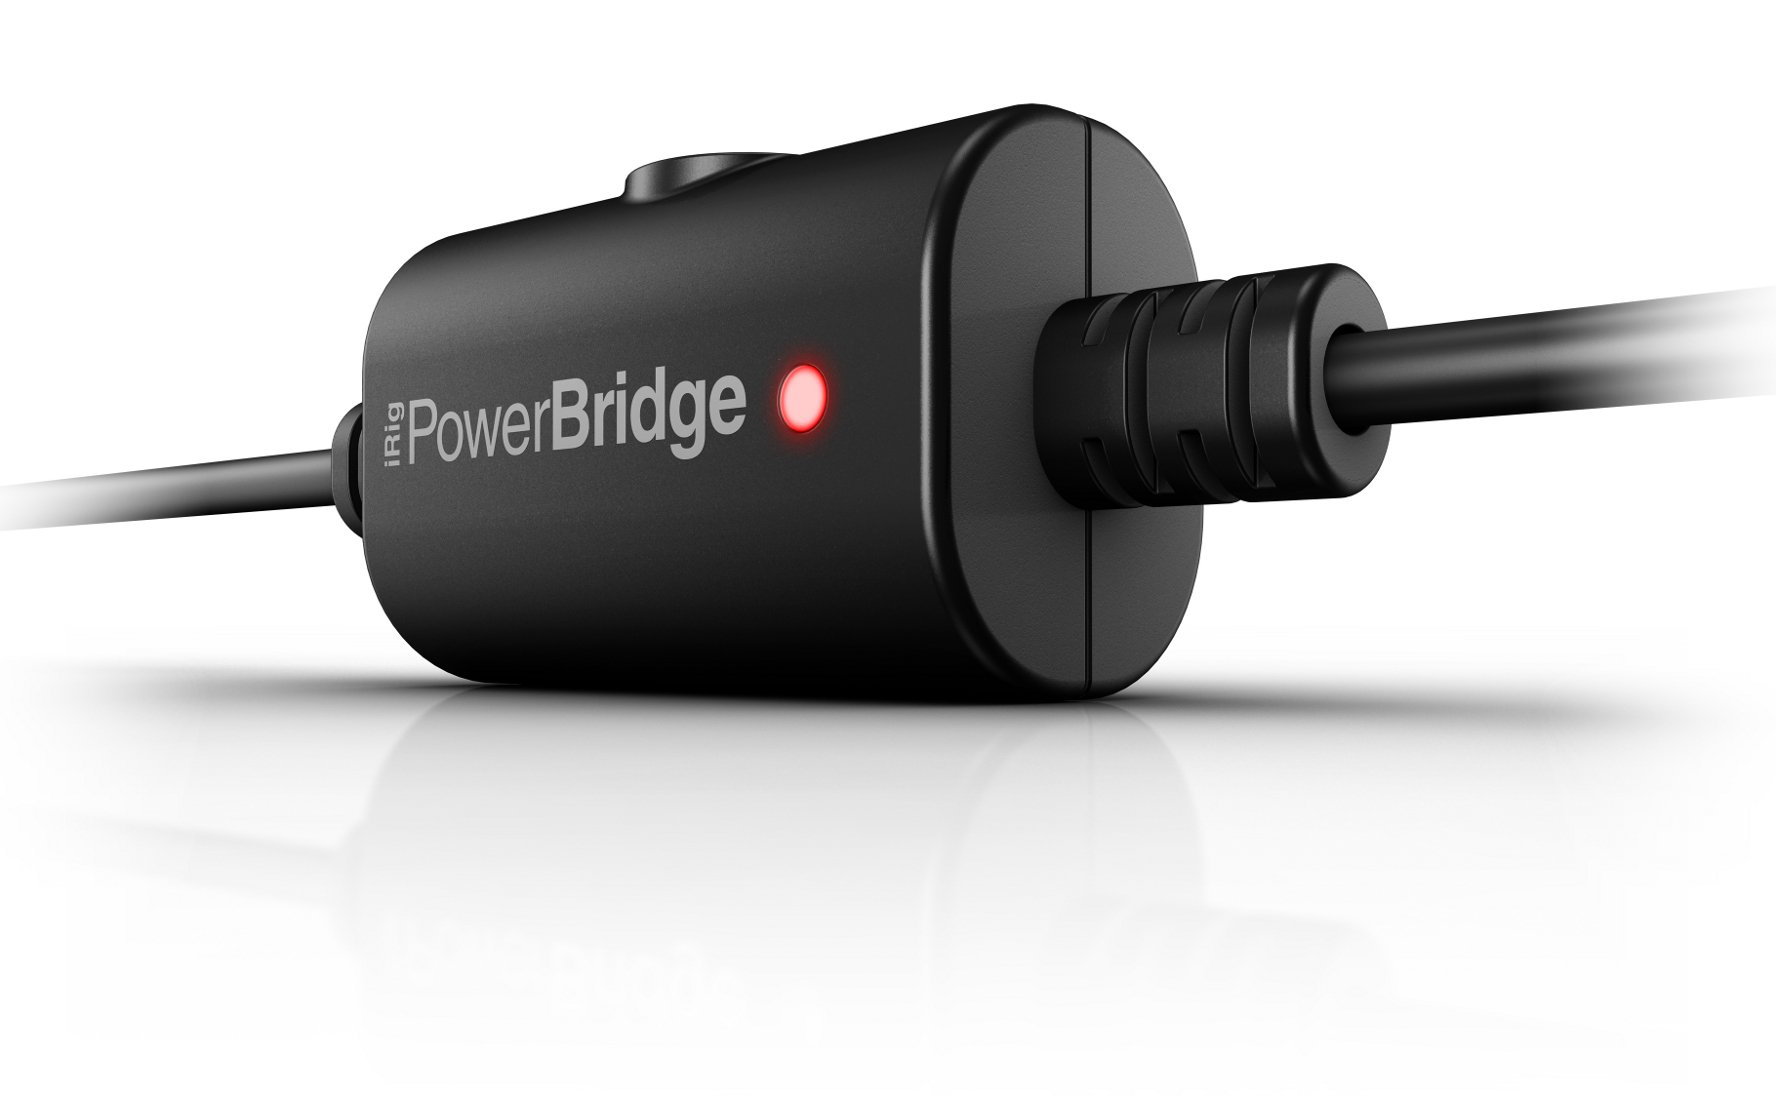 Charger for iPhone, iPad and iPod with Digital iRig Devices